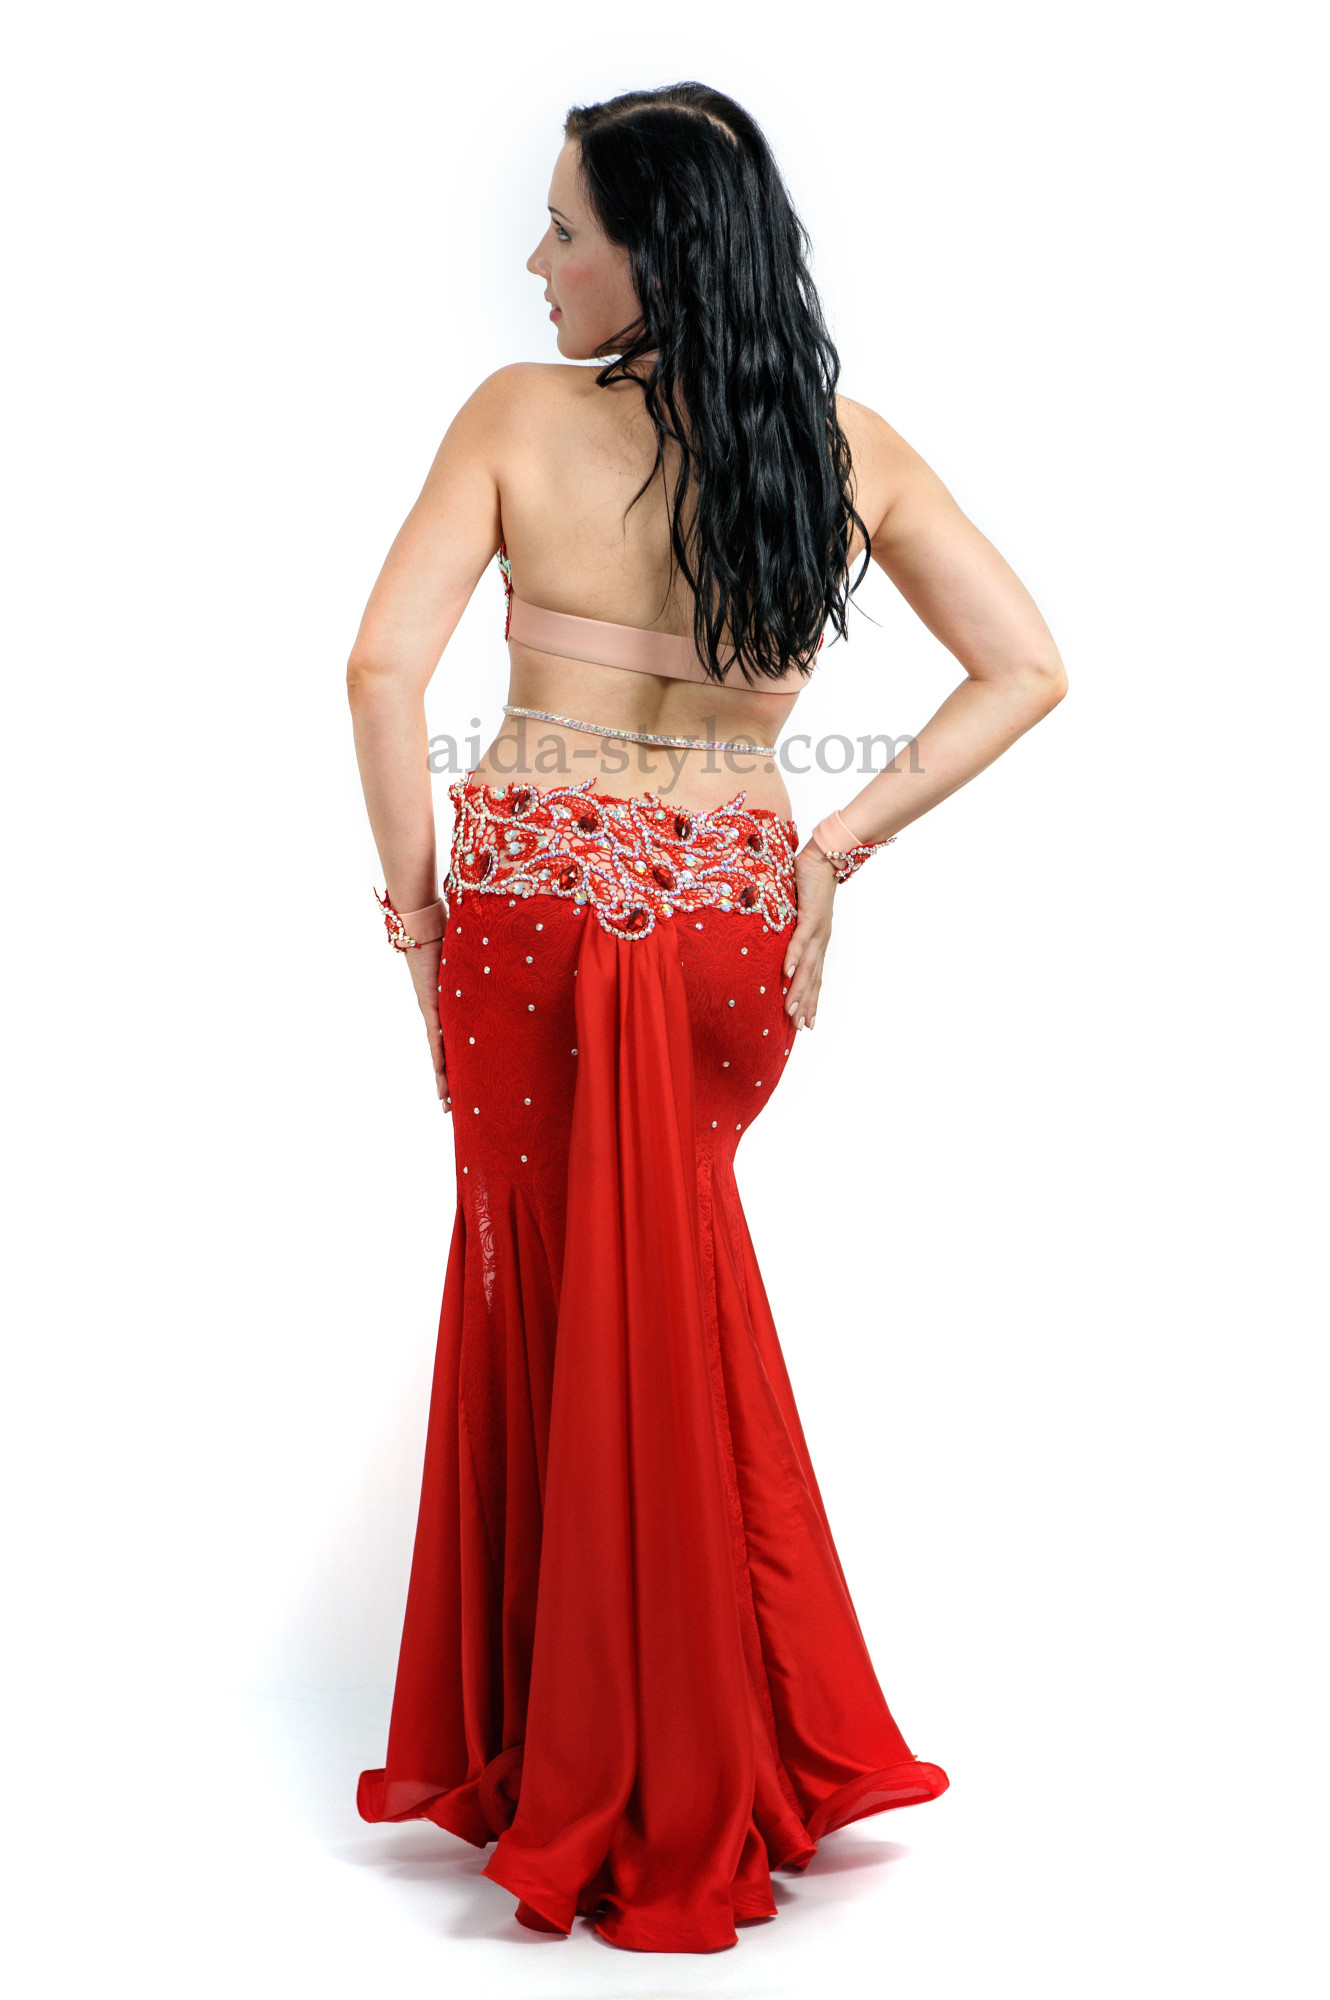 Red professional belly dance dress. The skirt has a cut on the left side. Both bra and skirt are decorated with stones